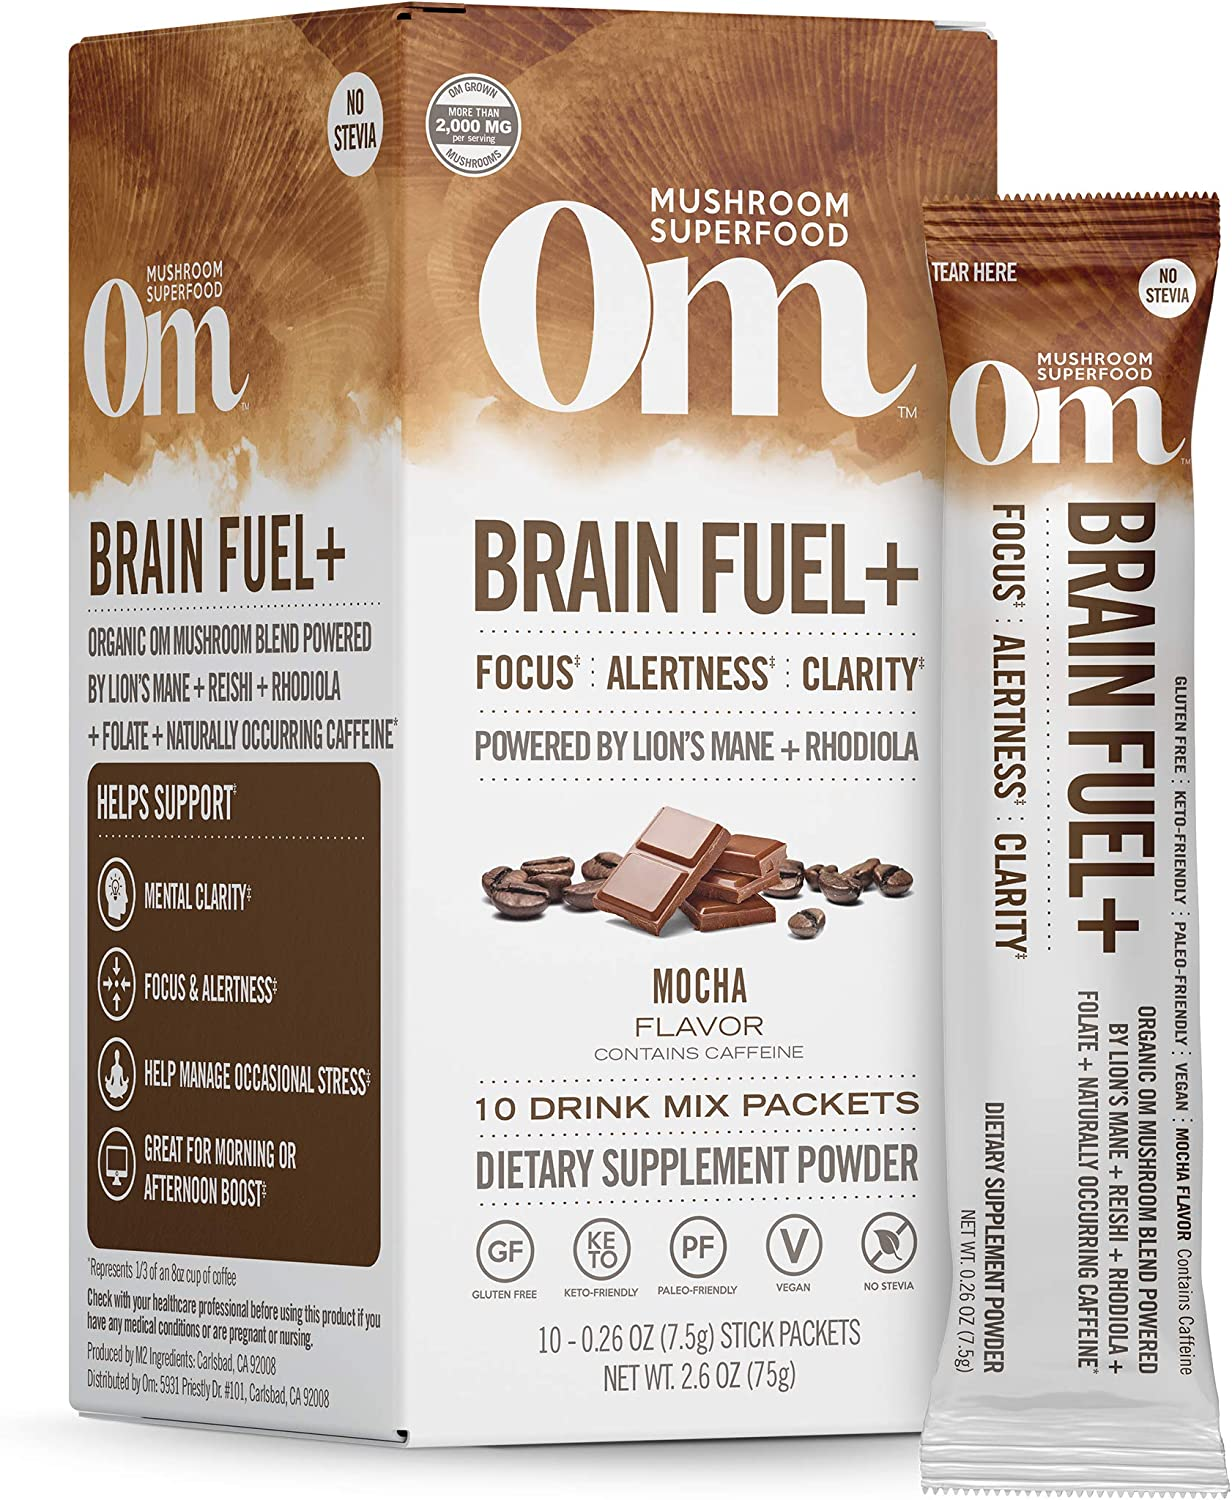 Om Mushroom Superfood Drink Mix Packets, Brain Fuel Plus, Mocha, 2.1 Ounce, Lions Mane & Rhodiola, Memory & Focus Supplement